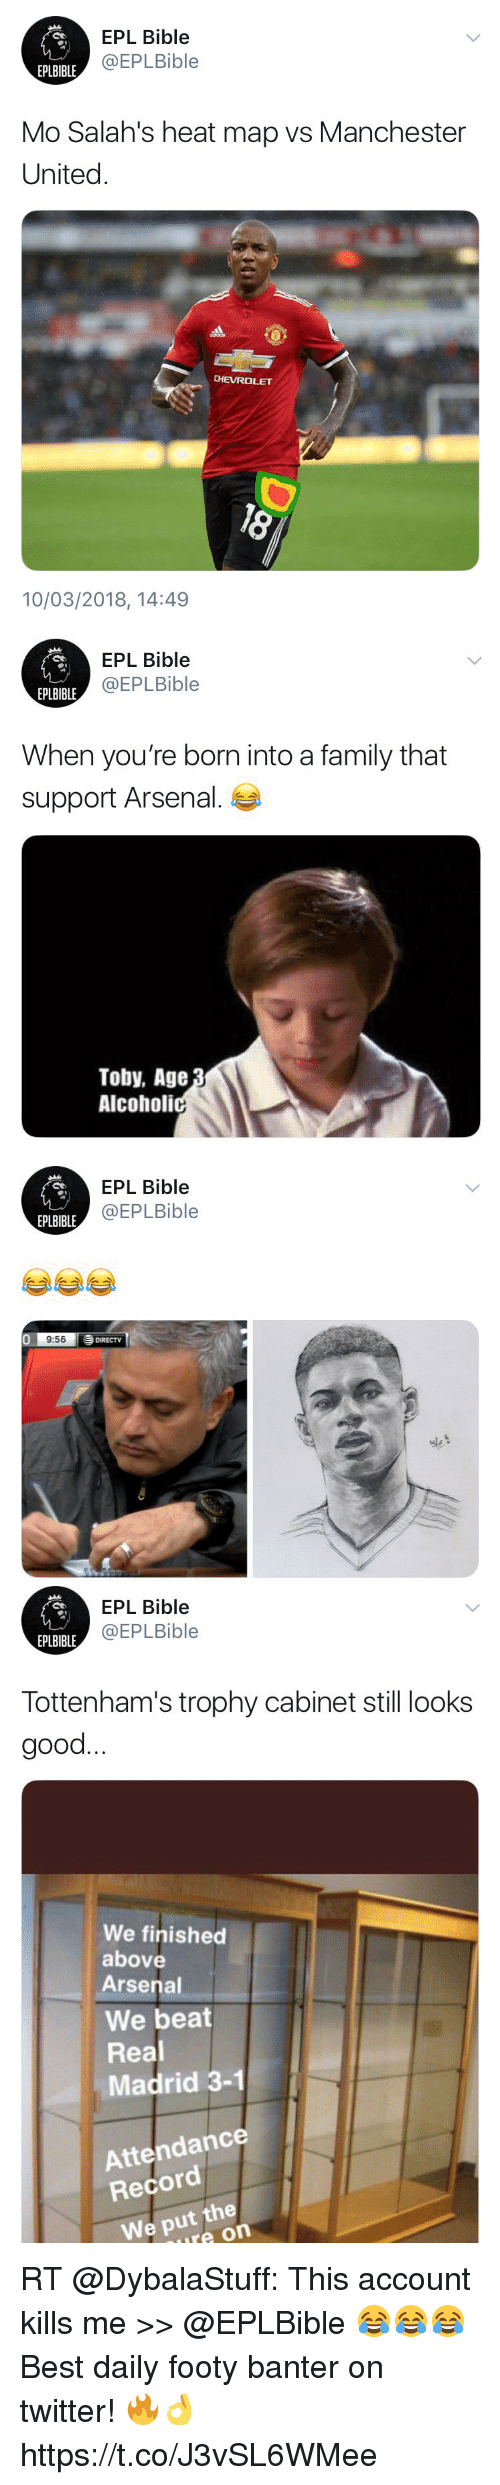 Arsenal, Family, and Memes: EPL Bible  @EPLBible  EPLBIBLE  Mo Salah's heat map vs Manchester  United.  CHEVROLET  10/03/2018, 14:49   EPL Bible  @EPLBible  EPLBIBLE  When you're born into a family that  support Arsenal.  Toby, Age  Alcoholi   EPL Bible  @EPLBible  EPLBIBLE  0  9:56  DIRECTV   EPL Bible  @EPLBible  EPLBIBLE  Tottenham's trophy cabinet still looks  good  We finished  above  Arsenal  We beat  Real  Madrid 3-1  Attendance  Record  We put the  ure on RT @DybalaStuff: This account kills me >> @EPLBible 😂😂😂   Best daily footy banter on twitter! 🔥👌 https://t.co/J3vSL6WMee